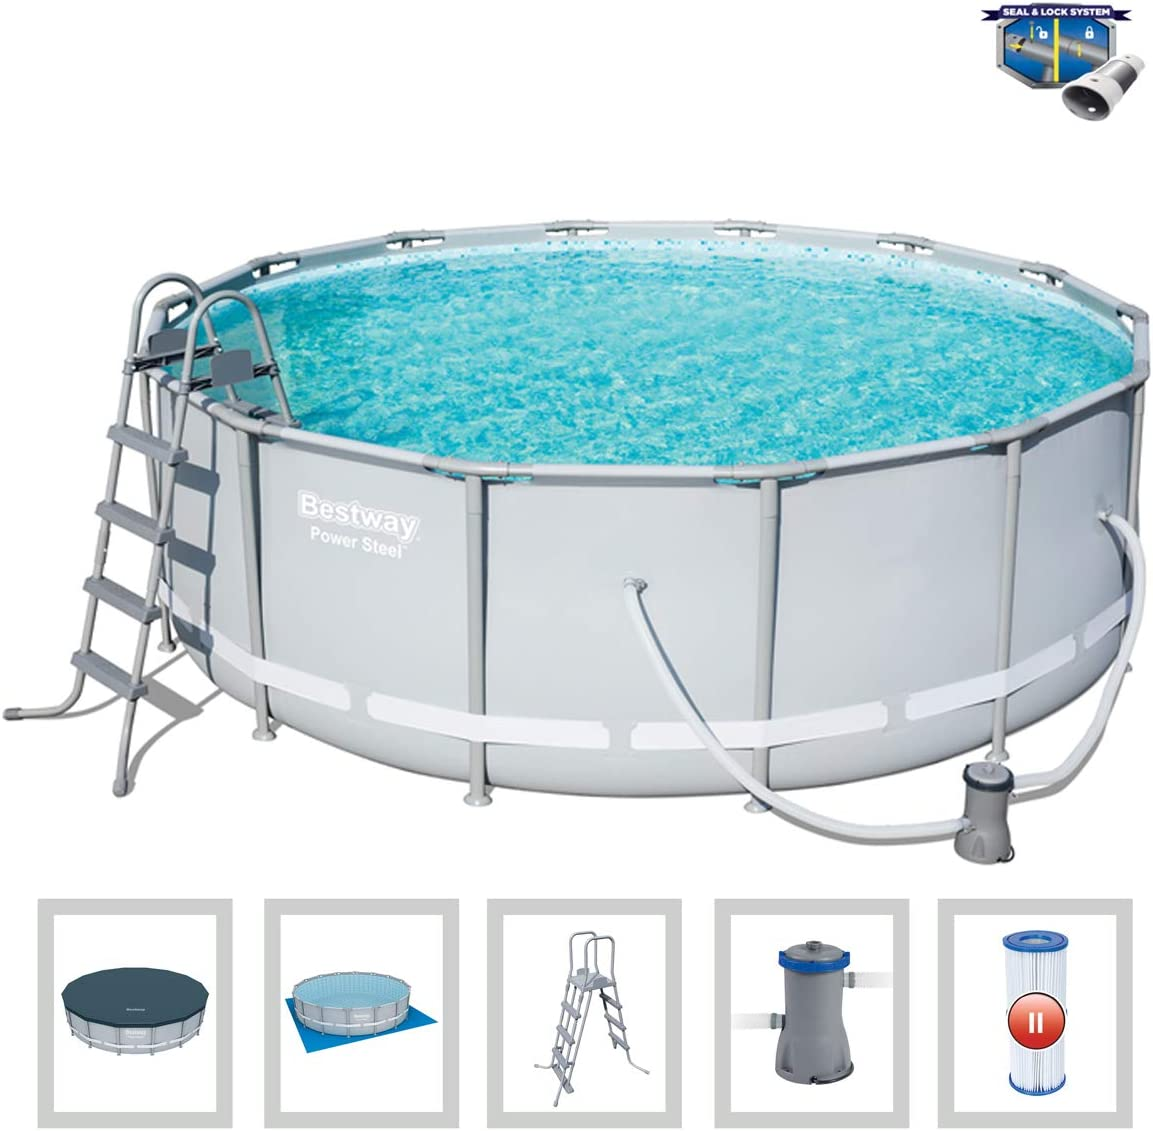 Piscina tubular Bestway Power Steel 15 232 L Dim 427 x 122 cm Pack ...